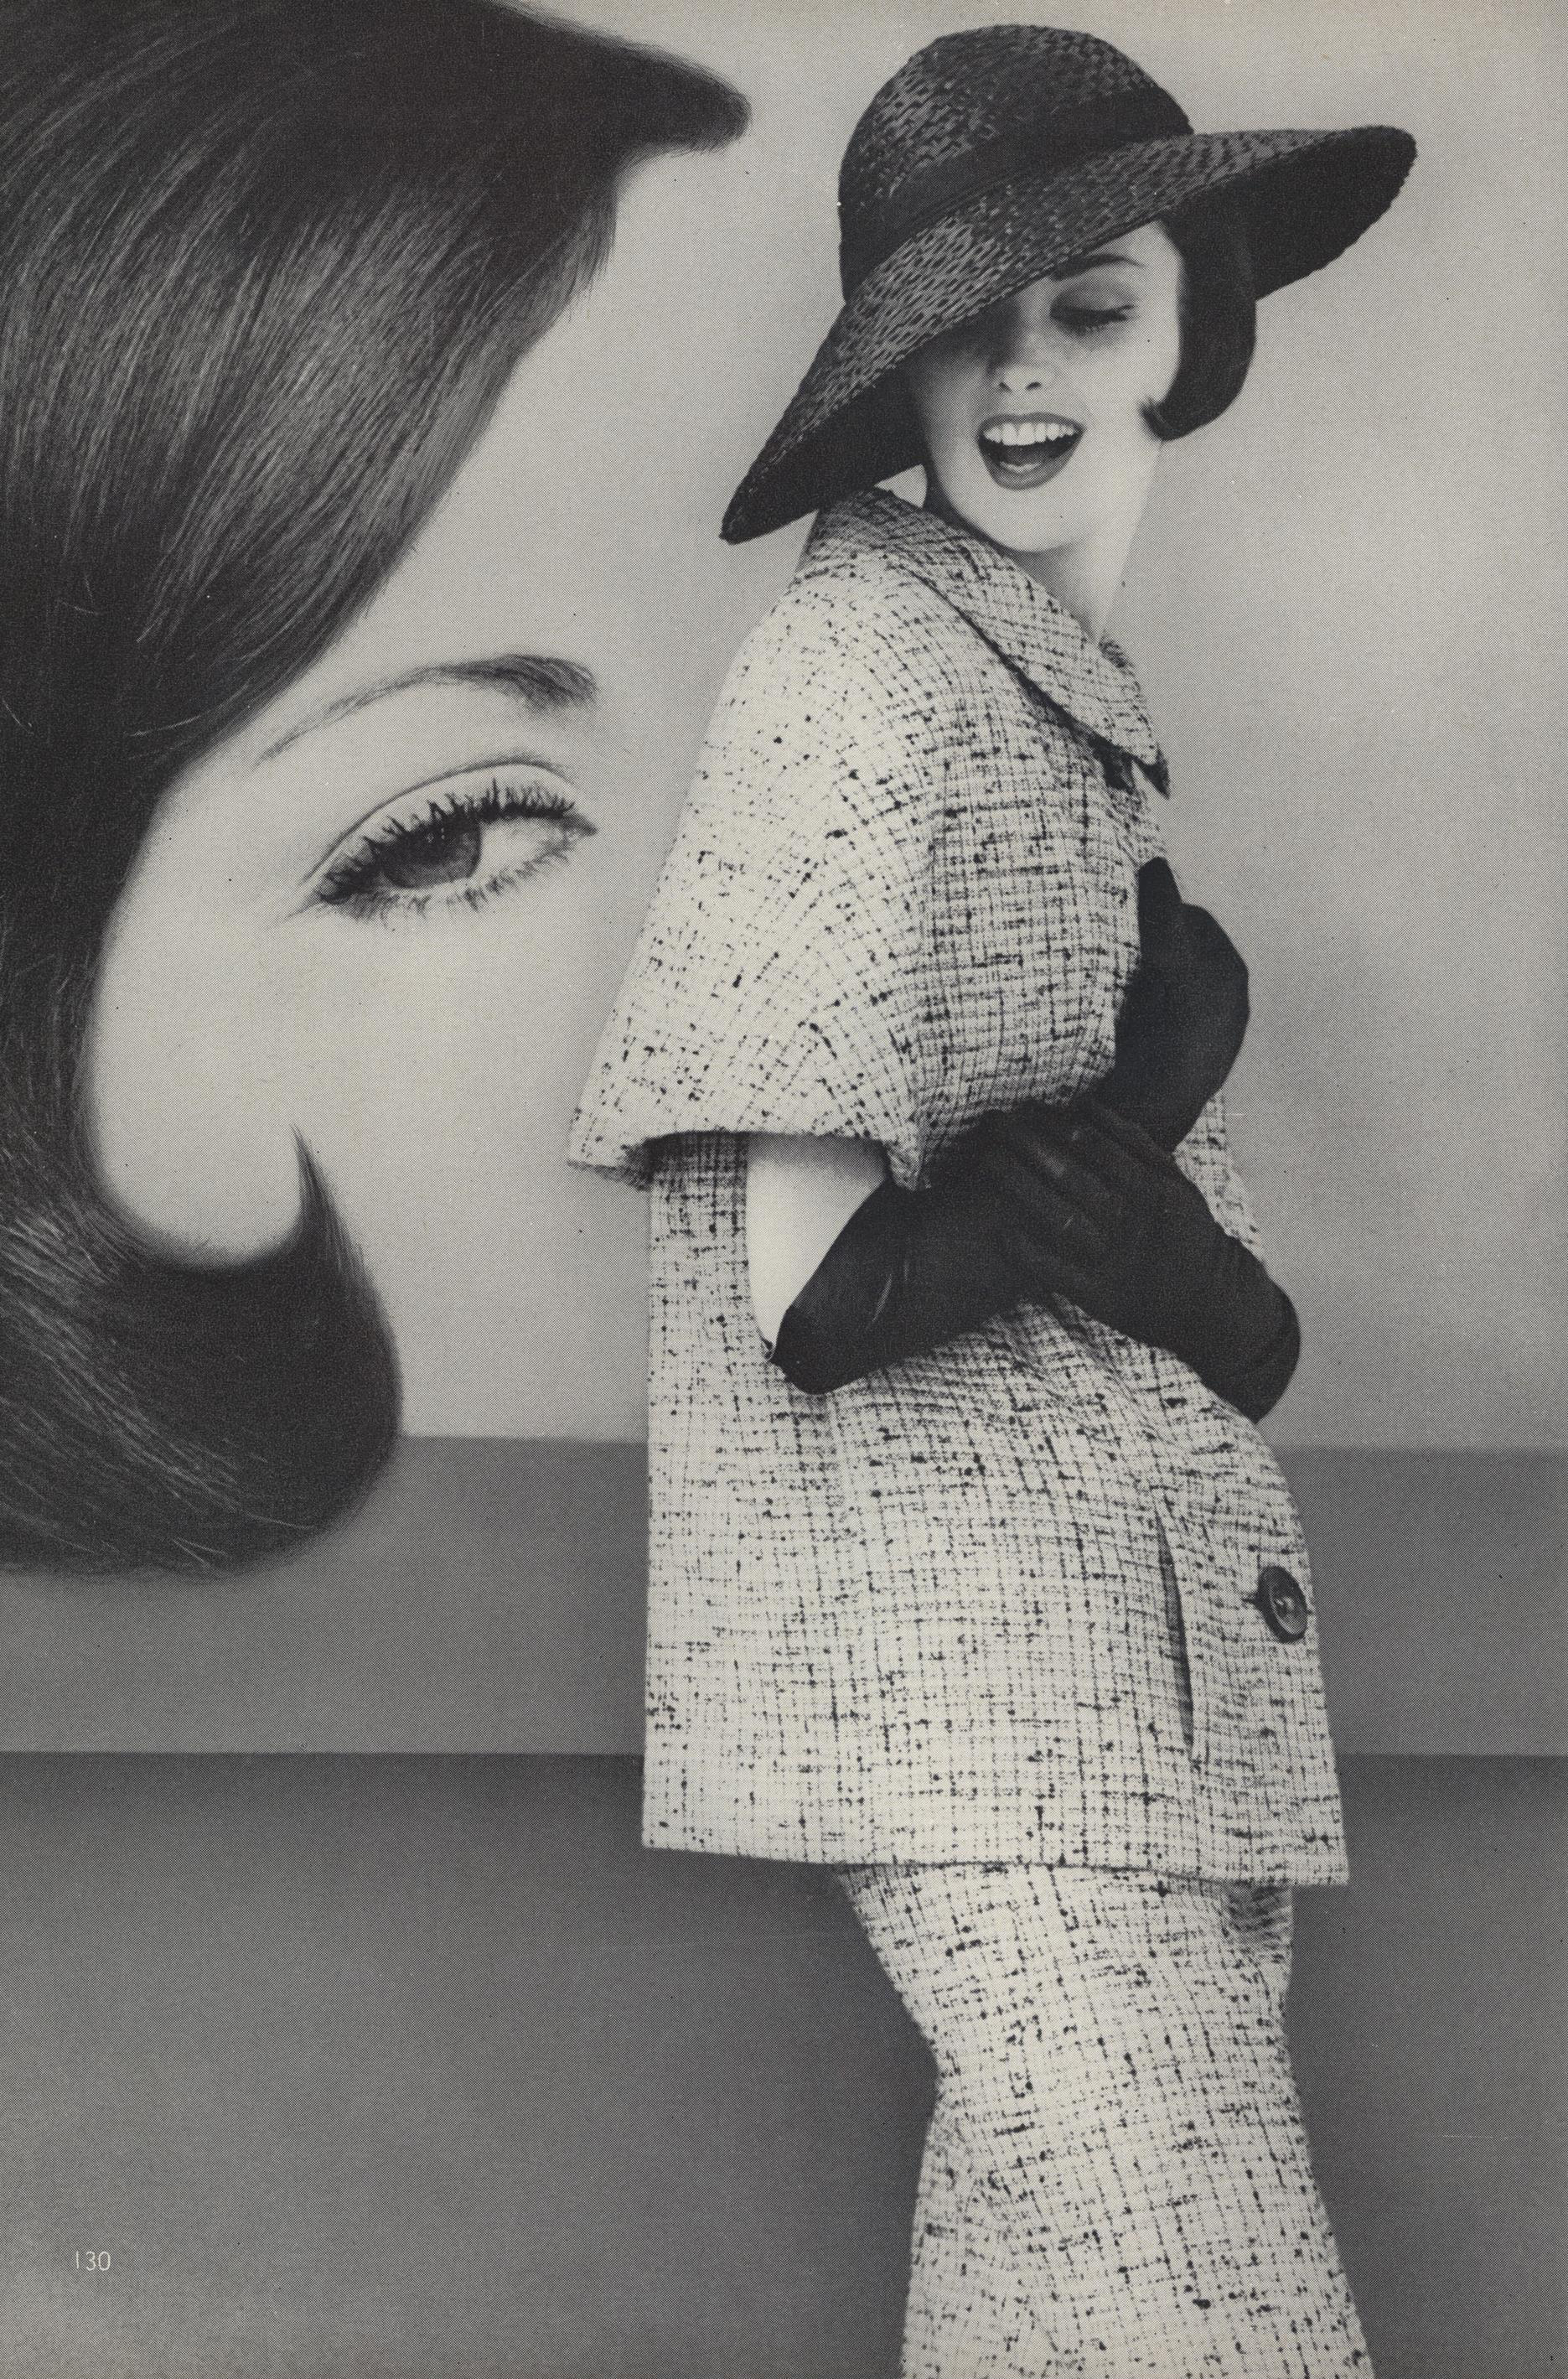 Known for his immaculate suiting, this tweed one features a long, loose jacket with short cone-like sleeves and a soft, sleeveless dress. The hat is also by Galanos. Photographed by Leombruno-Bodi for Vogue, March 1960.